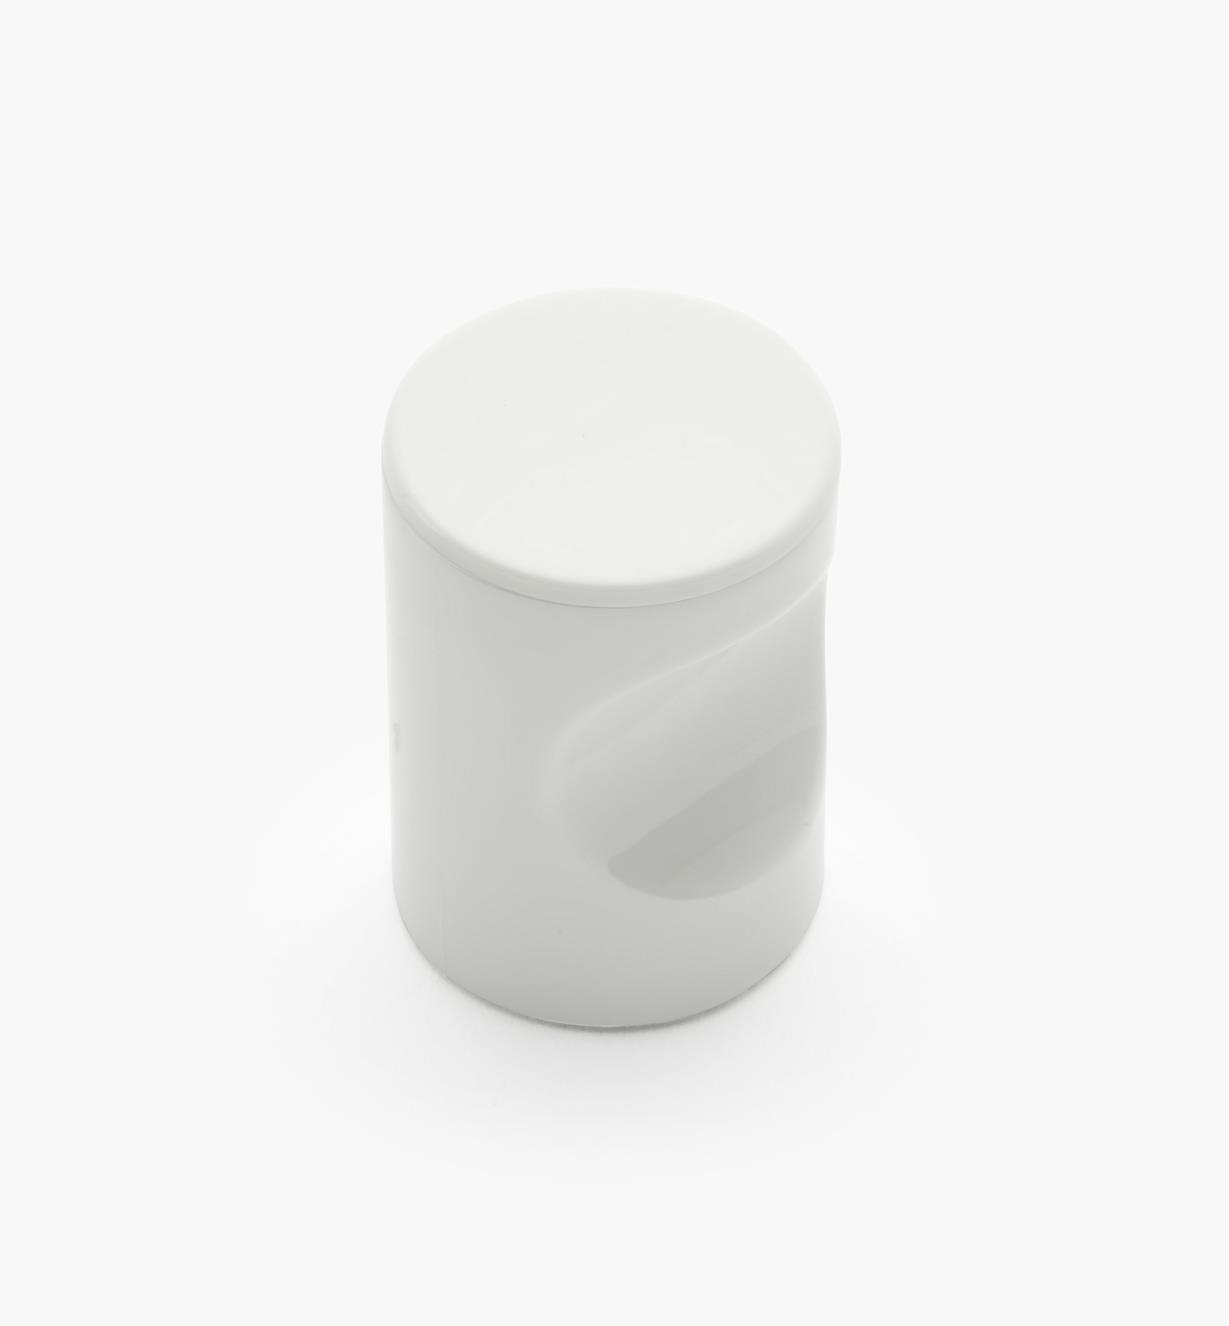 "01W4522 - 20mm x 1 11/16"" White Notched Pull/Knob"